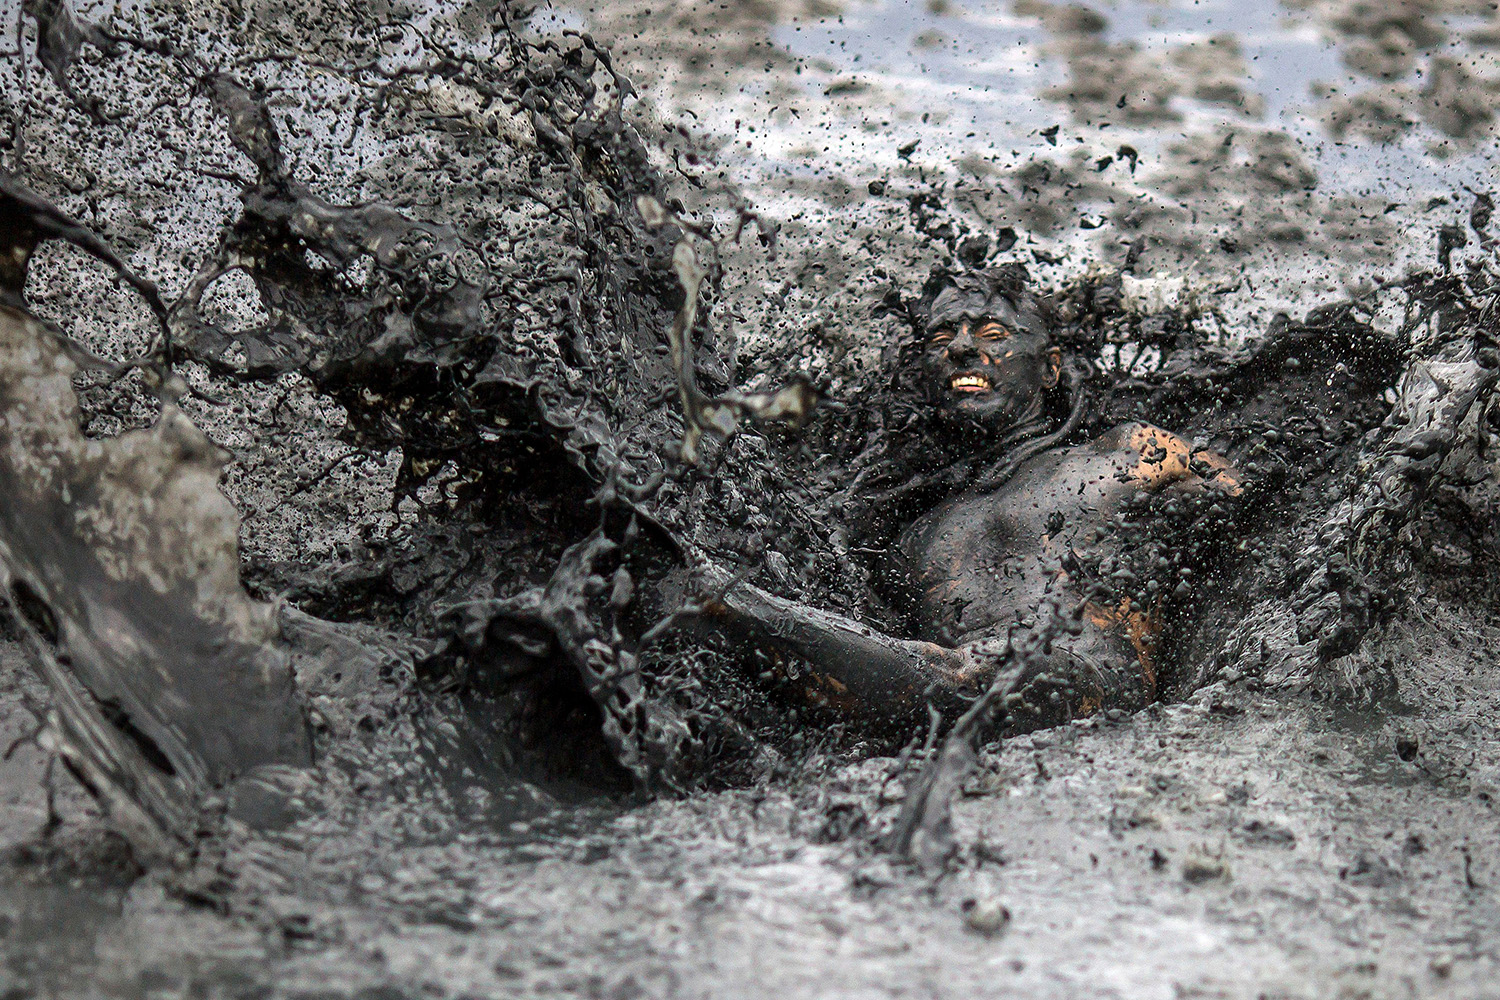 """A reveler jumps in the mud during the Bloco da Lama"""" a mud carnival party, in Rio de Janeiro state, Brazil, on Feb. 22. DANIEL RAMALHO/AFP via Getty Images"""